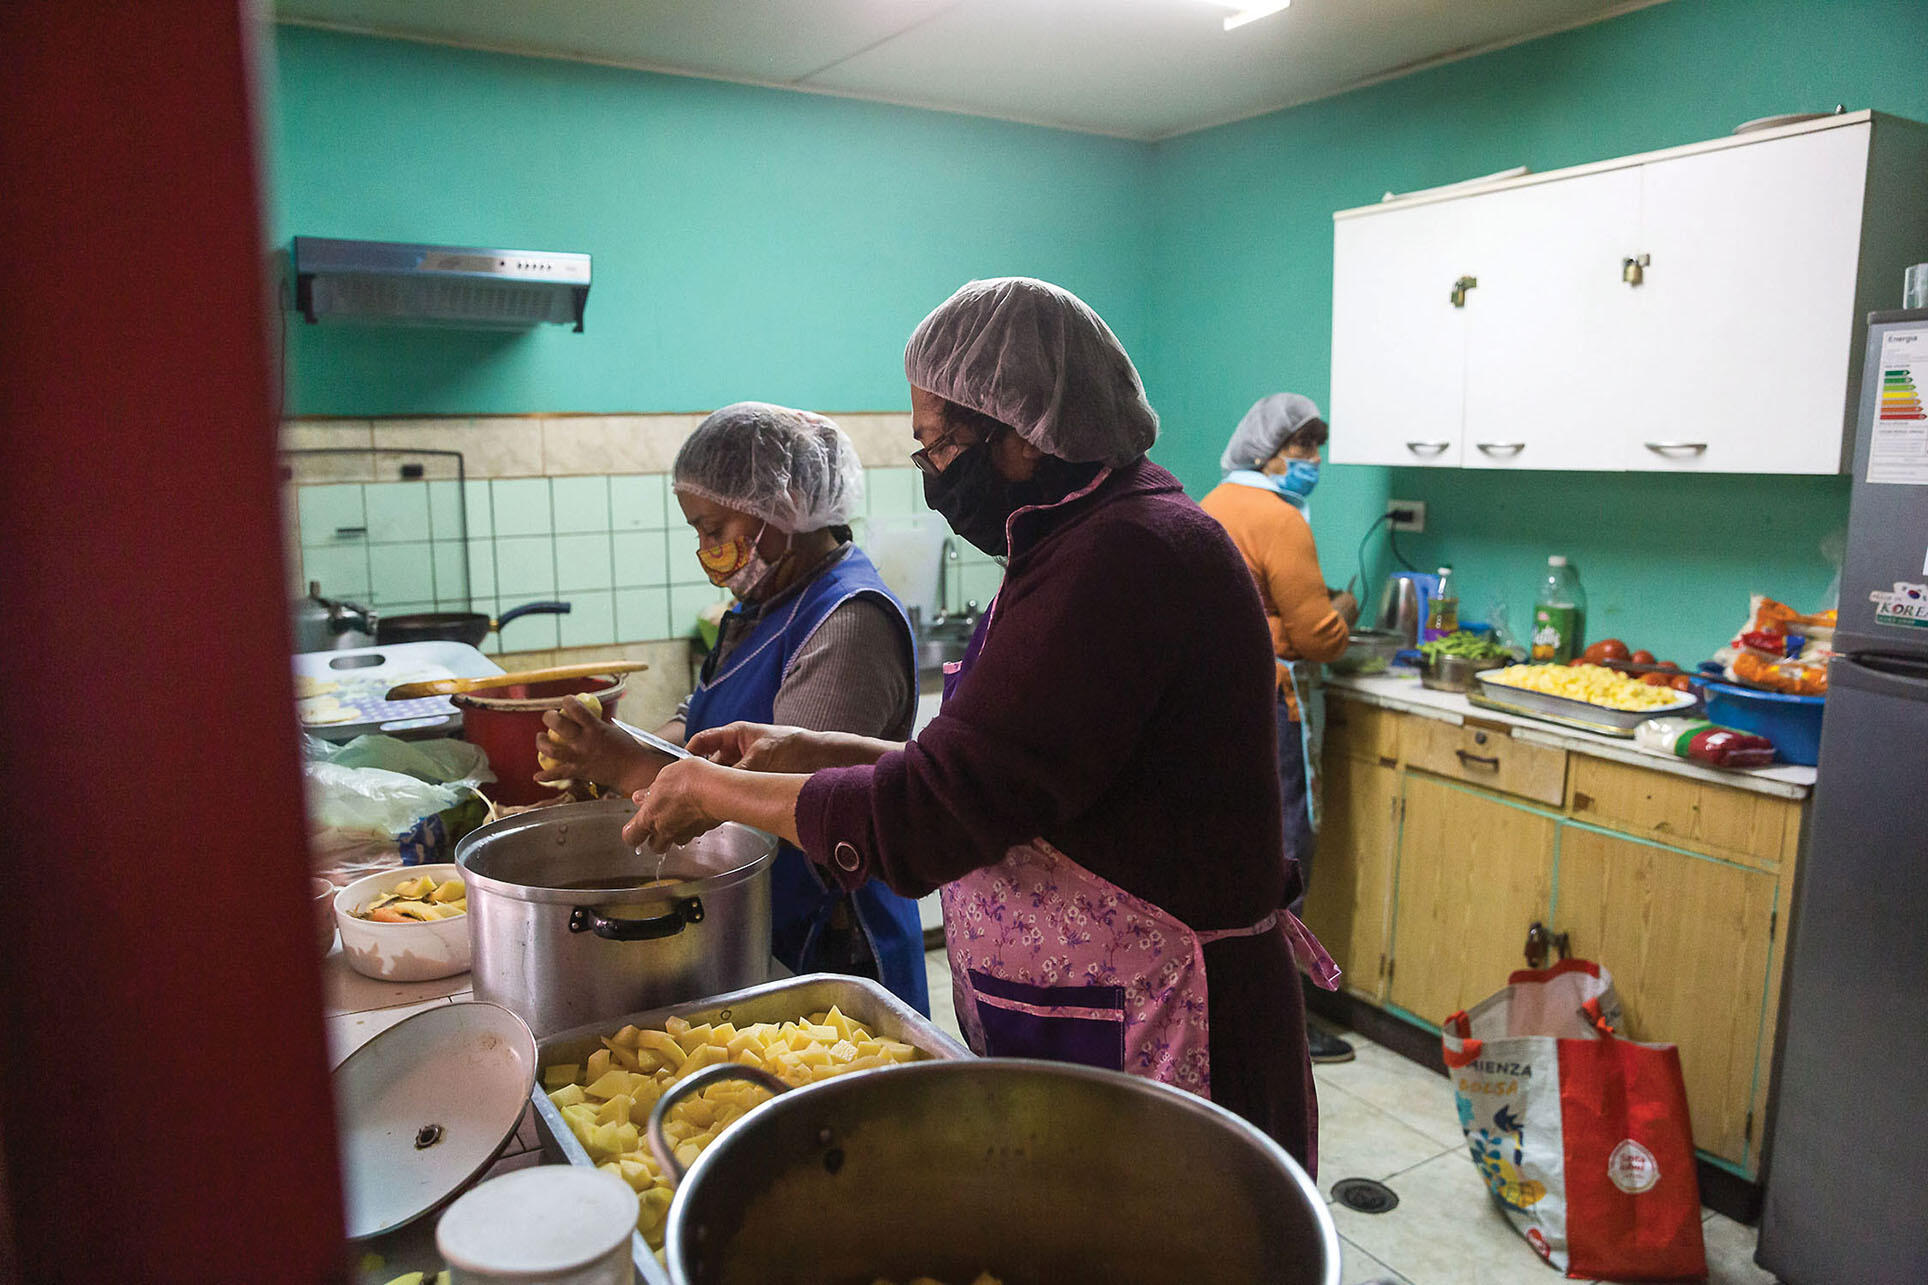 Cooks in an olla común (soup kitchen) prepare food for delivery in Arica, Chile, June 2020. (Photo by Ibar Silva C. / Ilustre Municipalidad de Arica.)